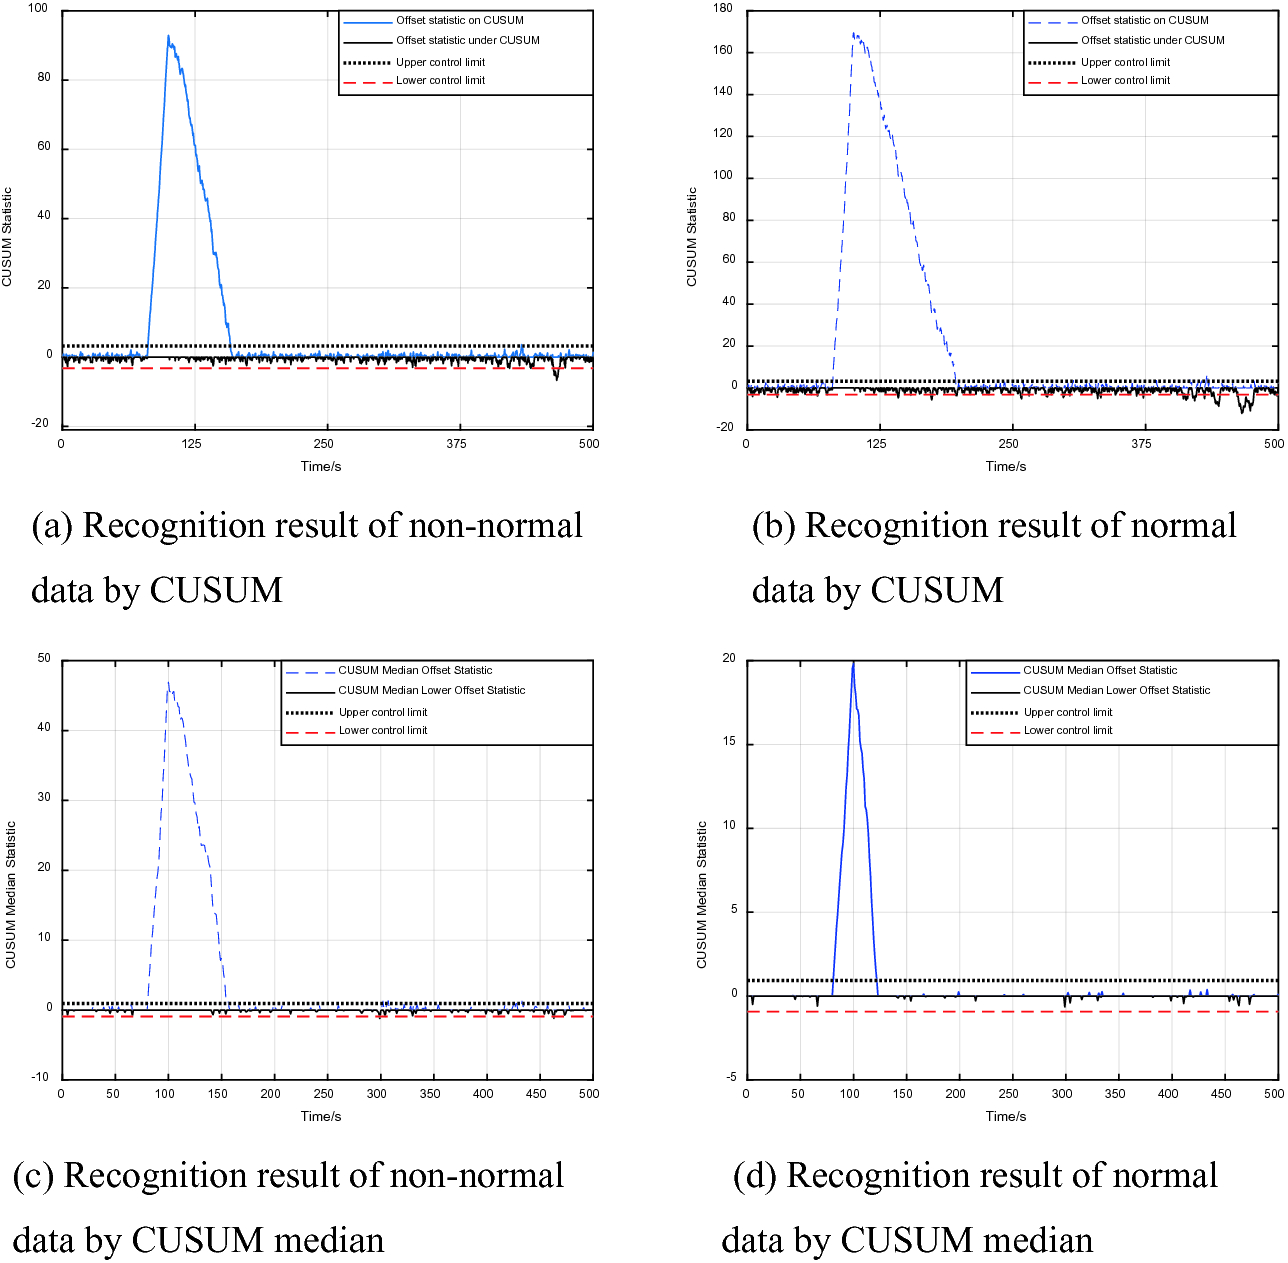 An Outlier Recognition Method Based on Improved CUSUM for